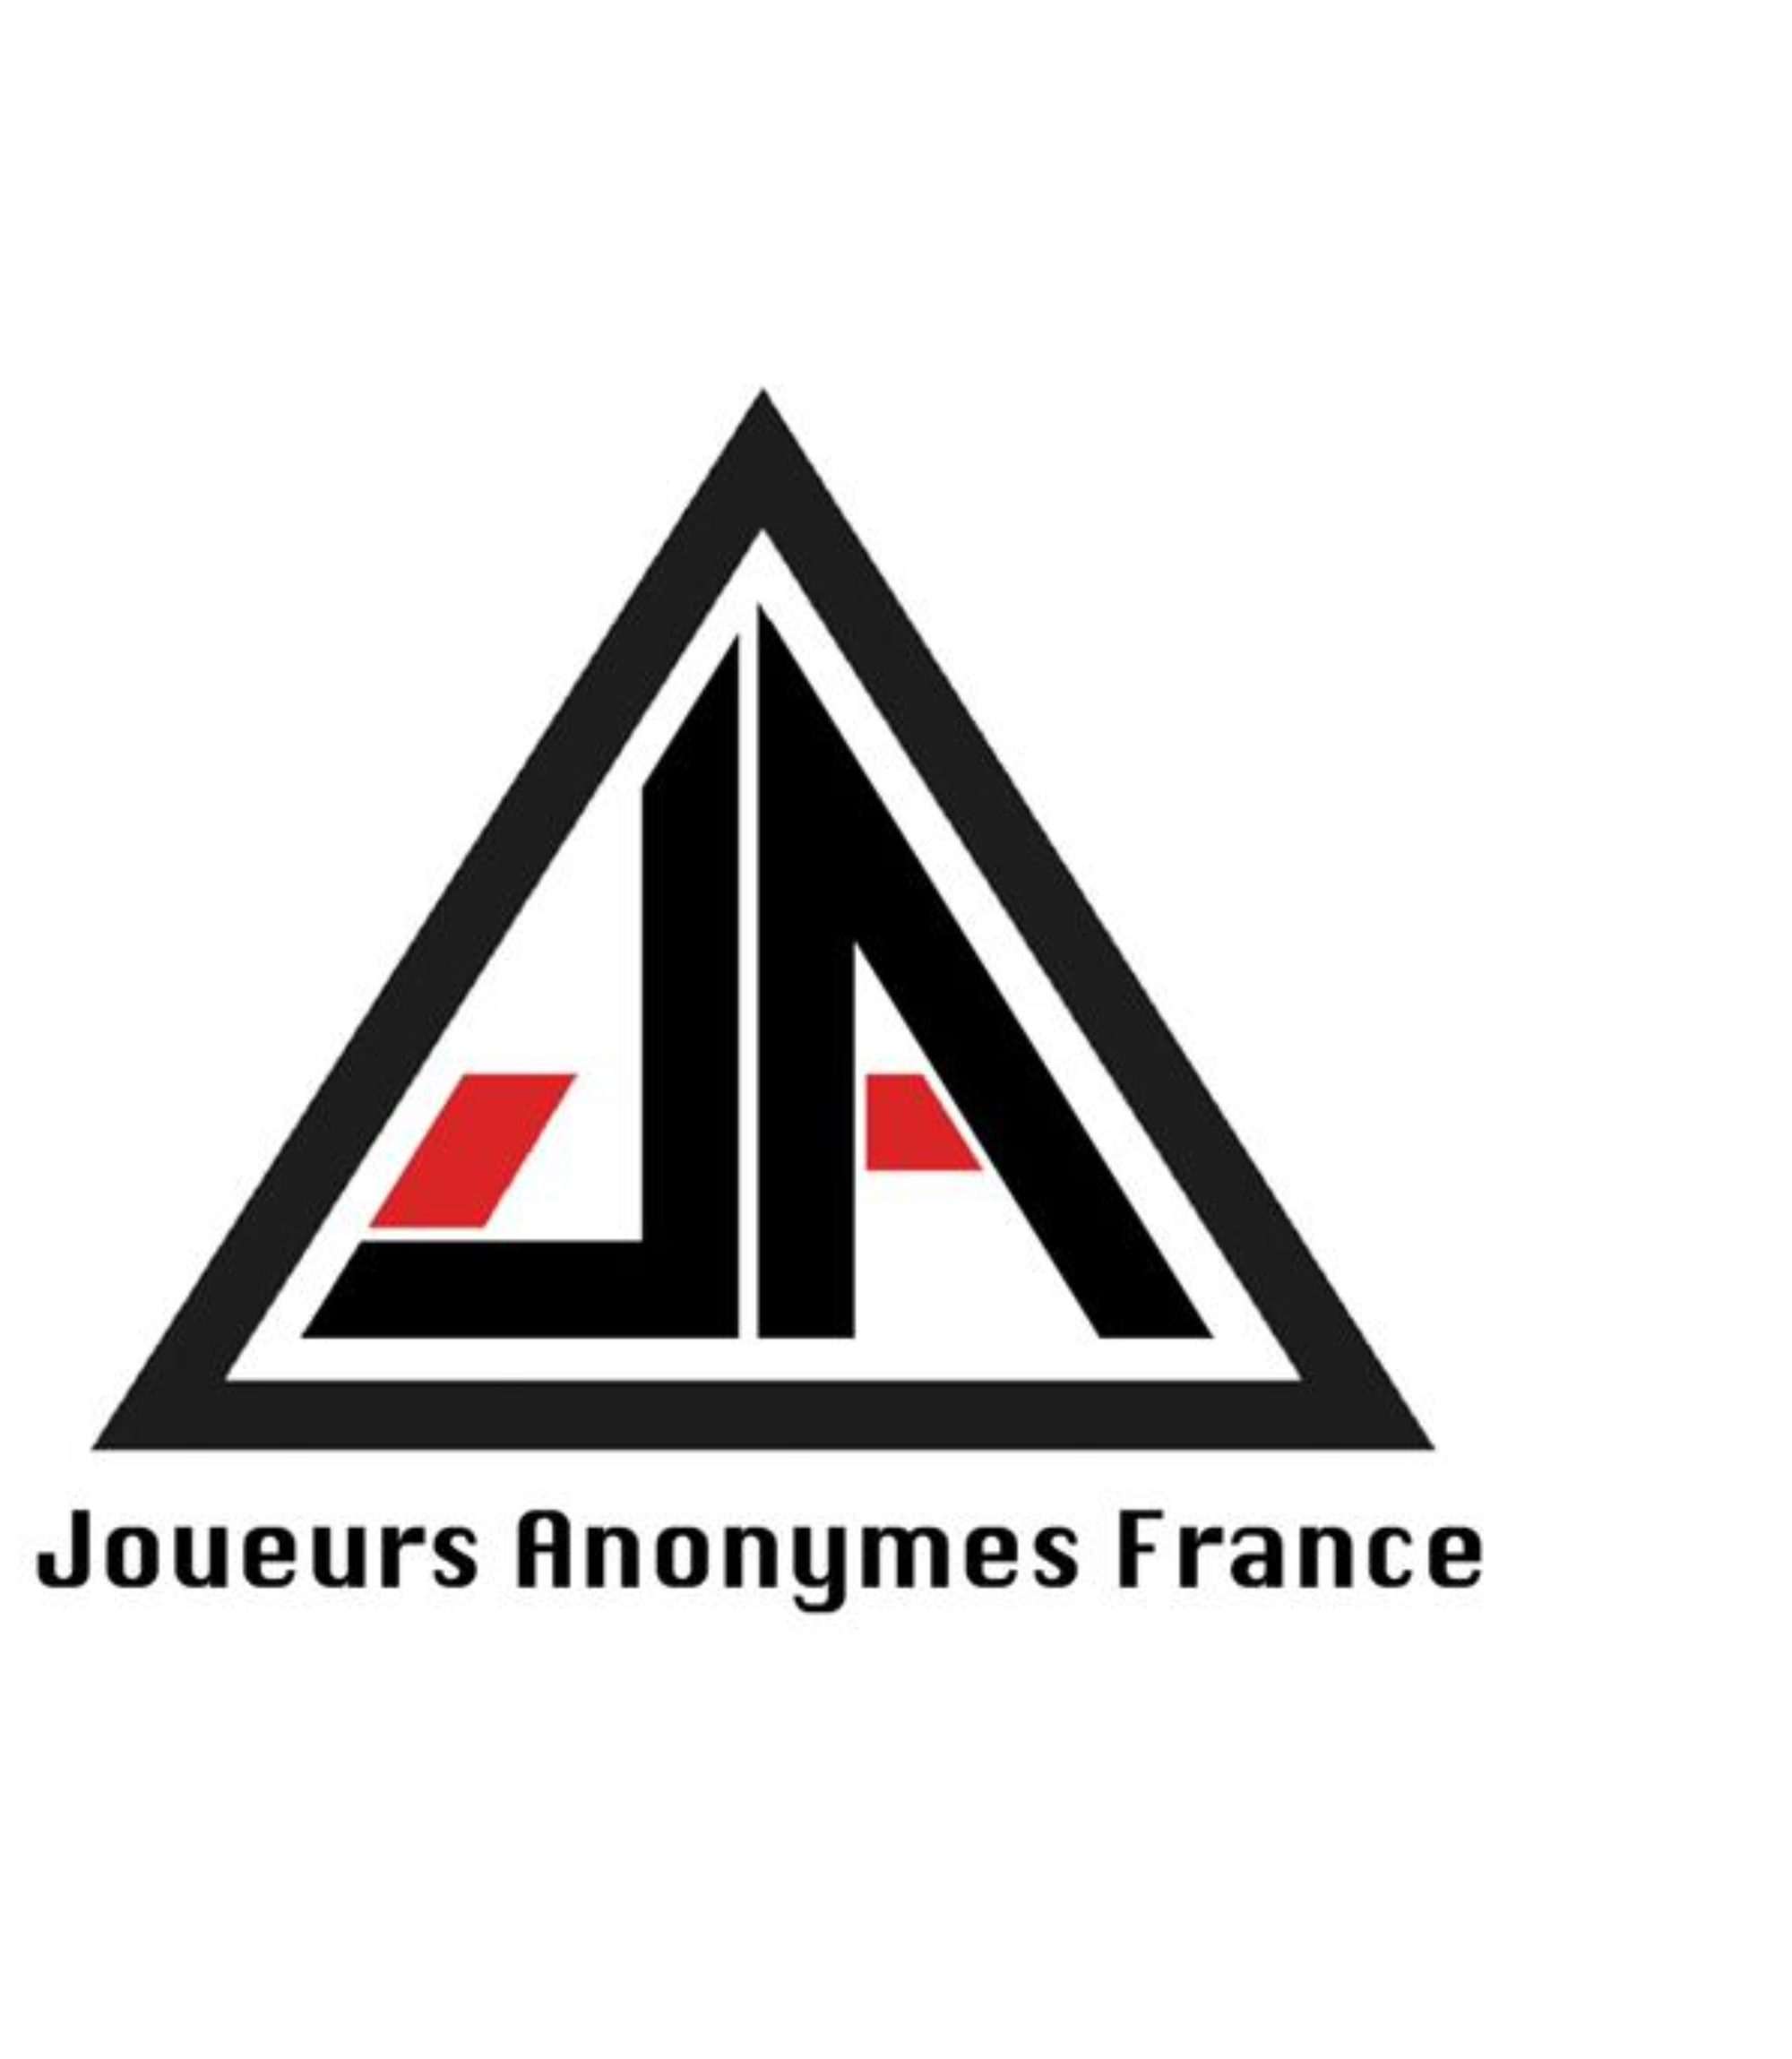 les joueurs anonymes